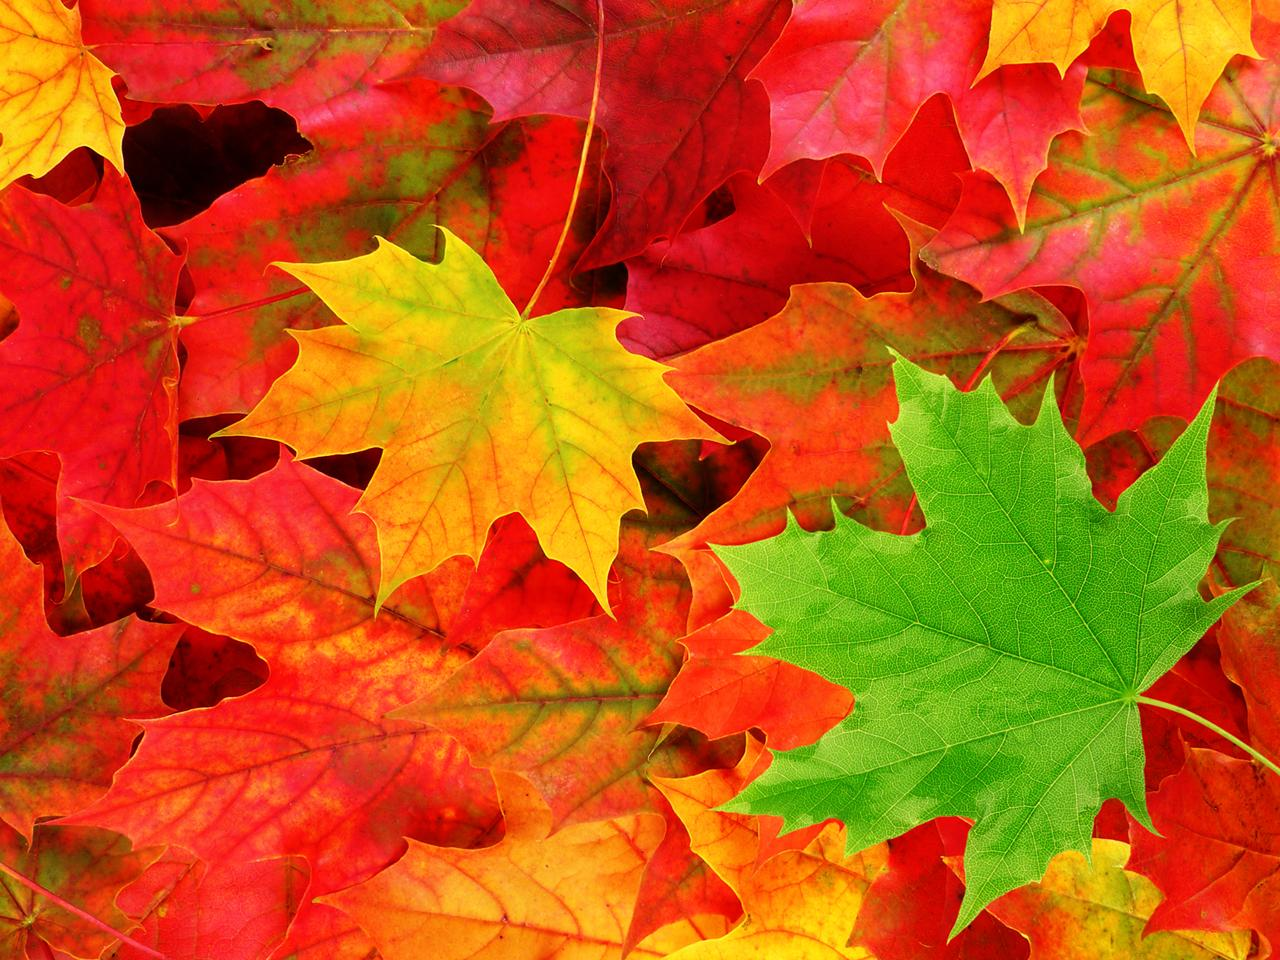 Autumn Leaves 1 Wallpapers   1280x960   215771 1280x960